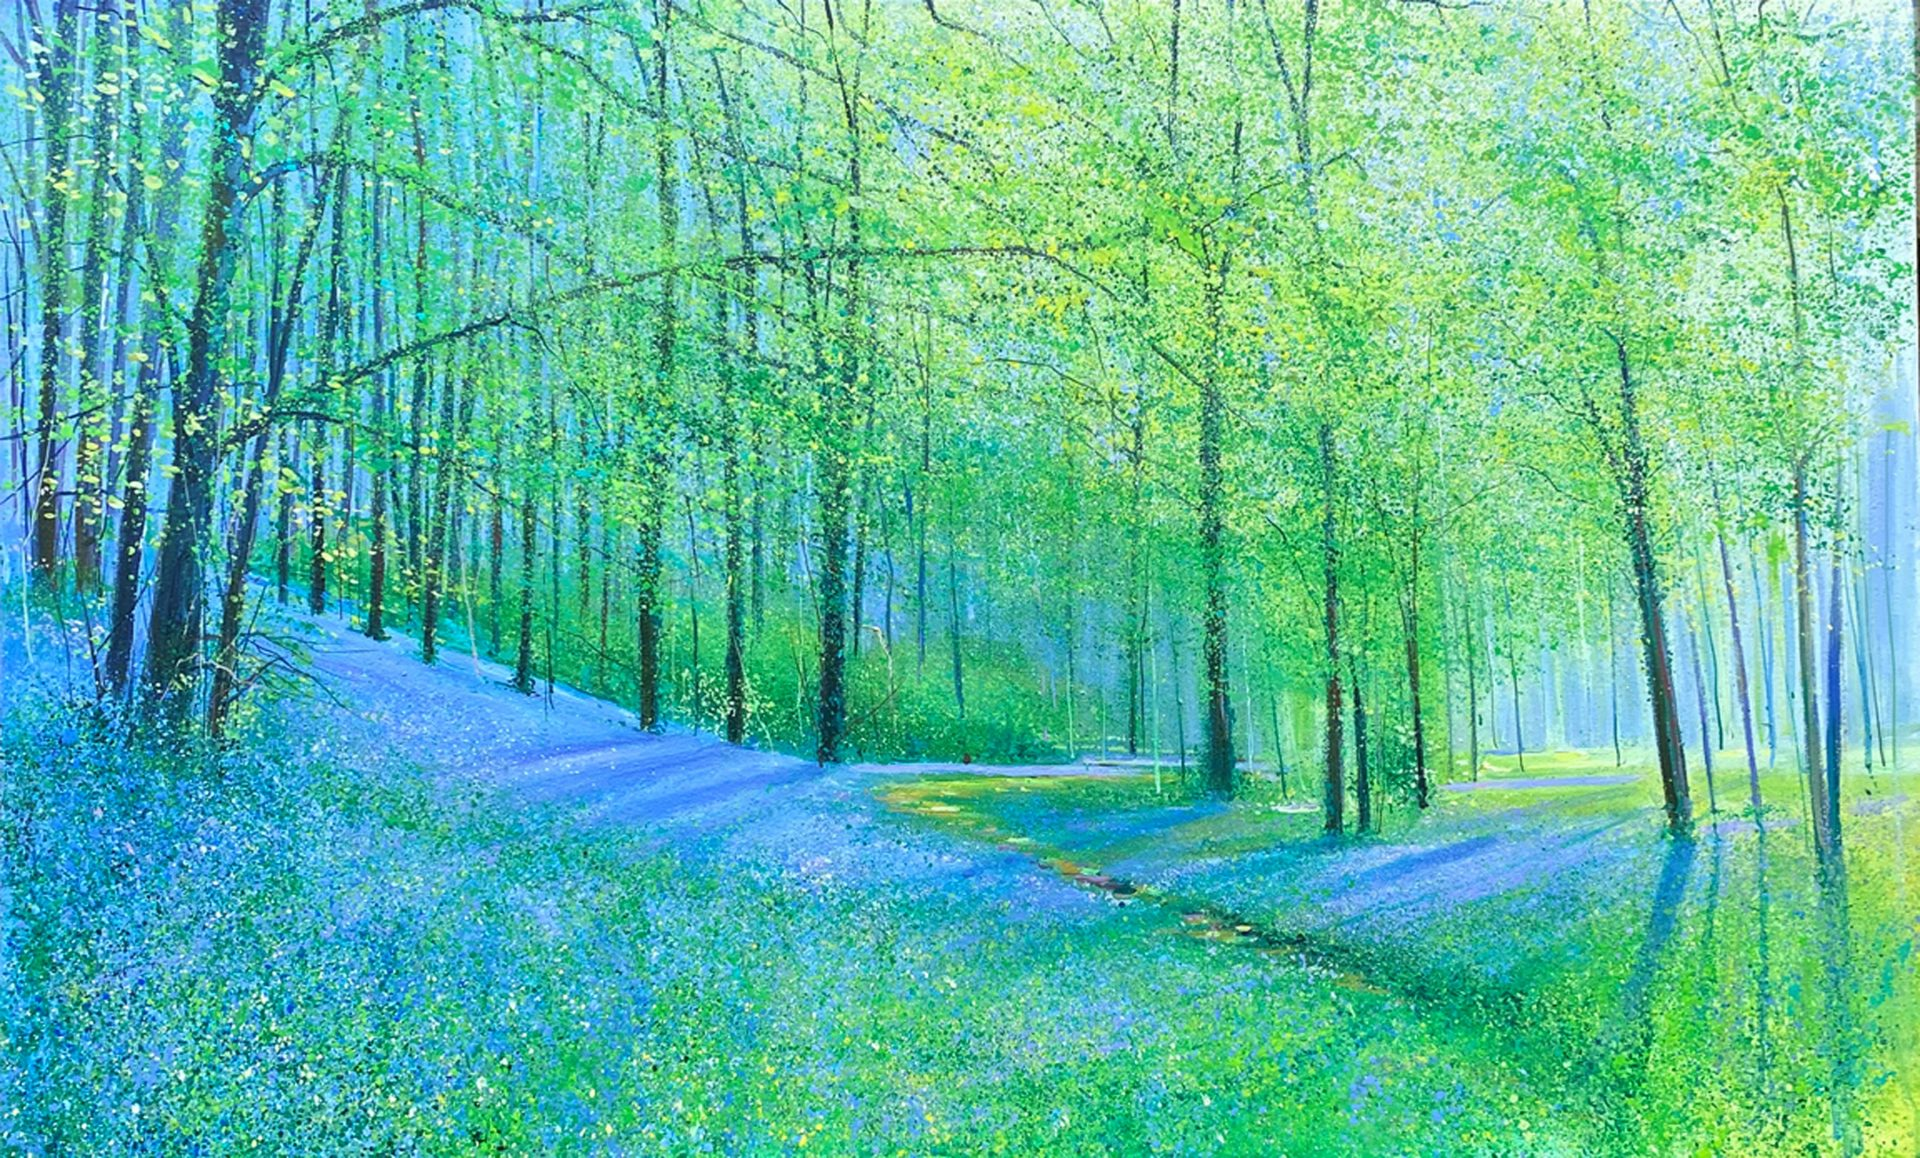 John Connolly Lockdown Blues magical forest painting for sale